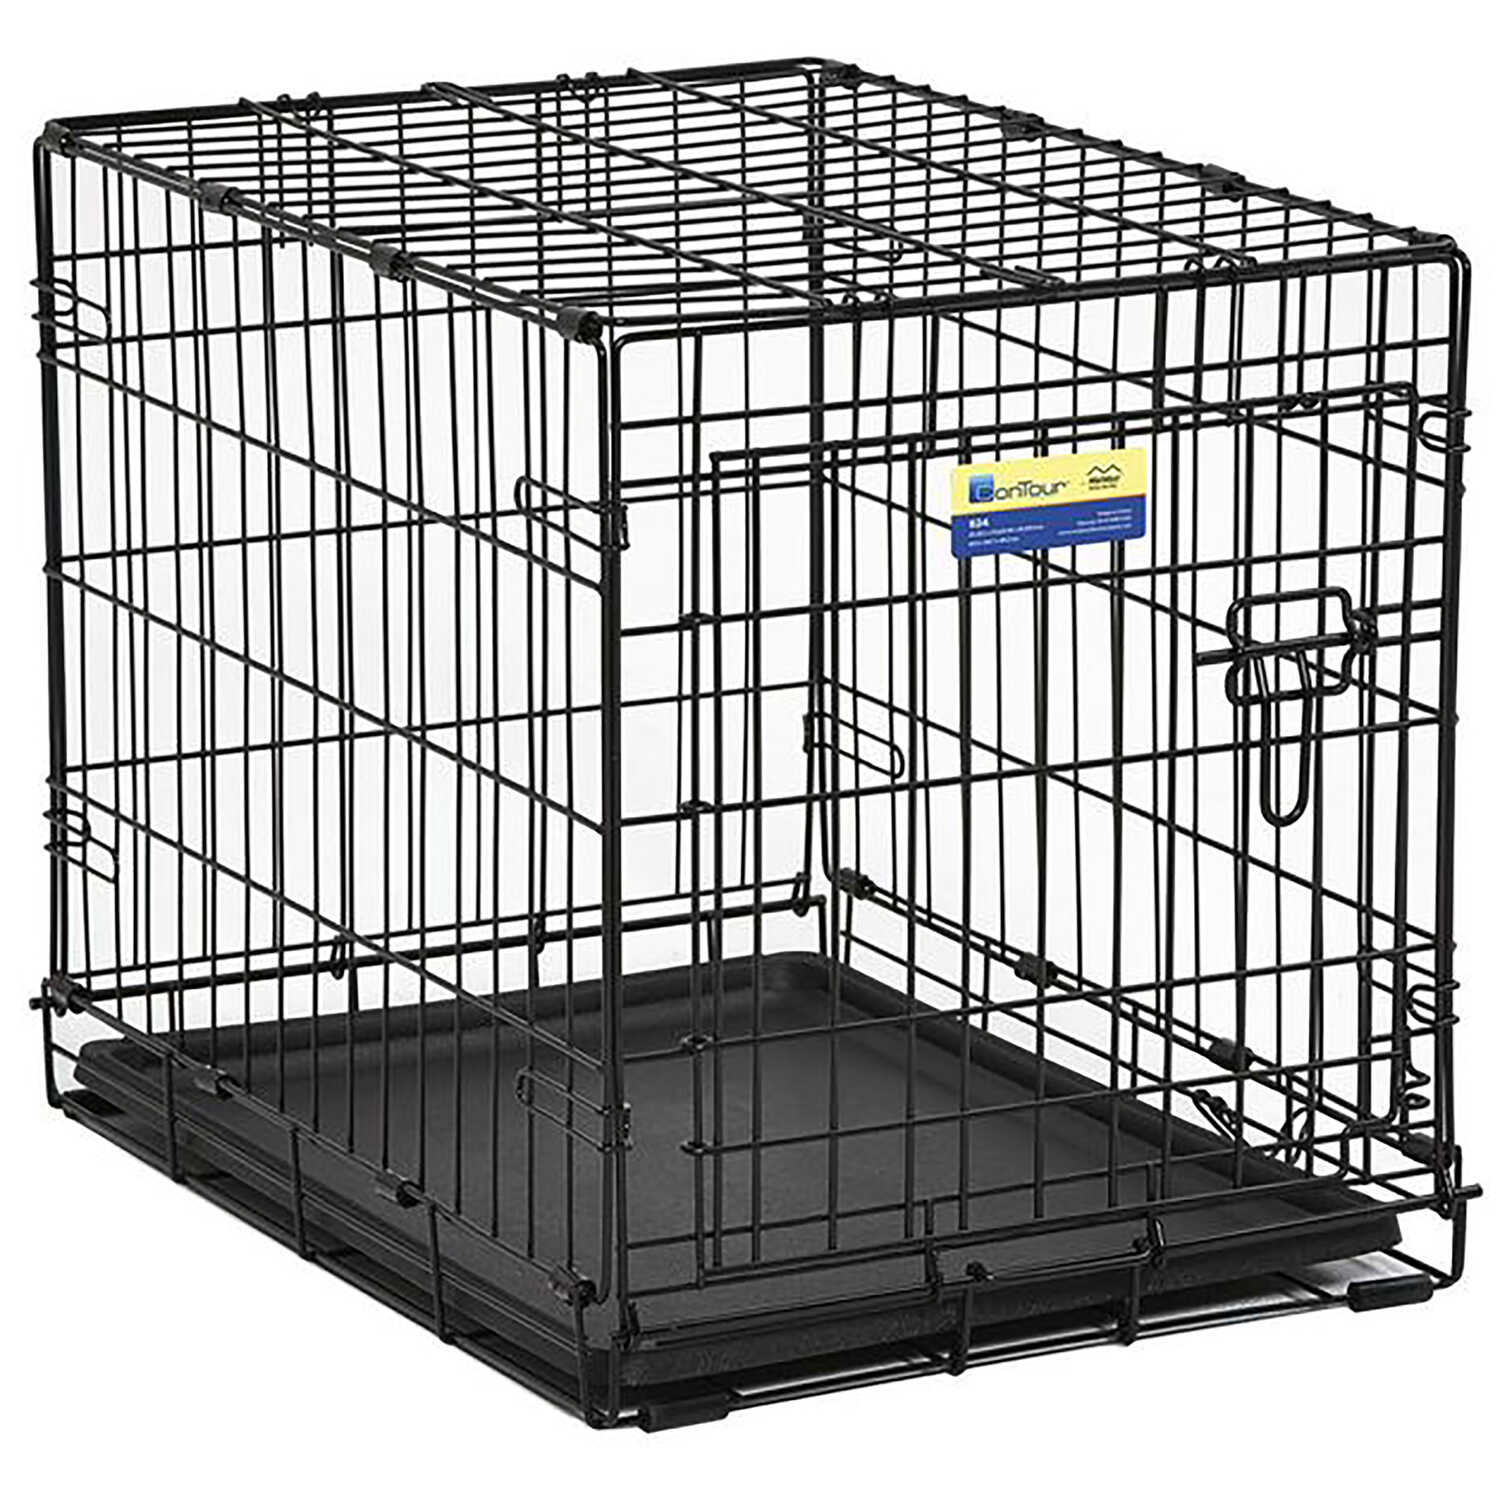 Contour  Medium  Steel  Dog Crate  19.5 in. H x 18 in. W x 24 in. D